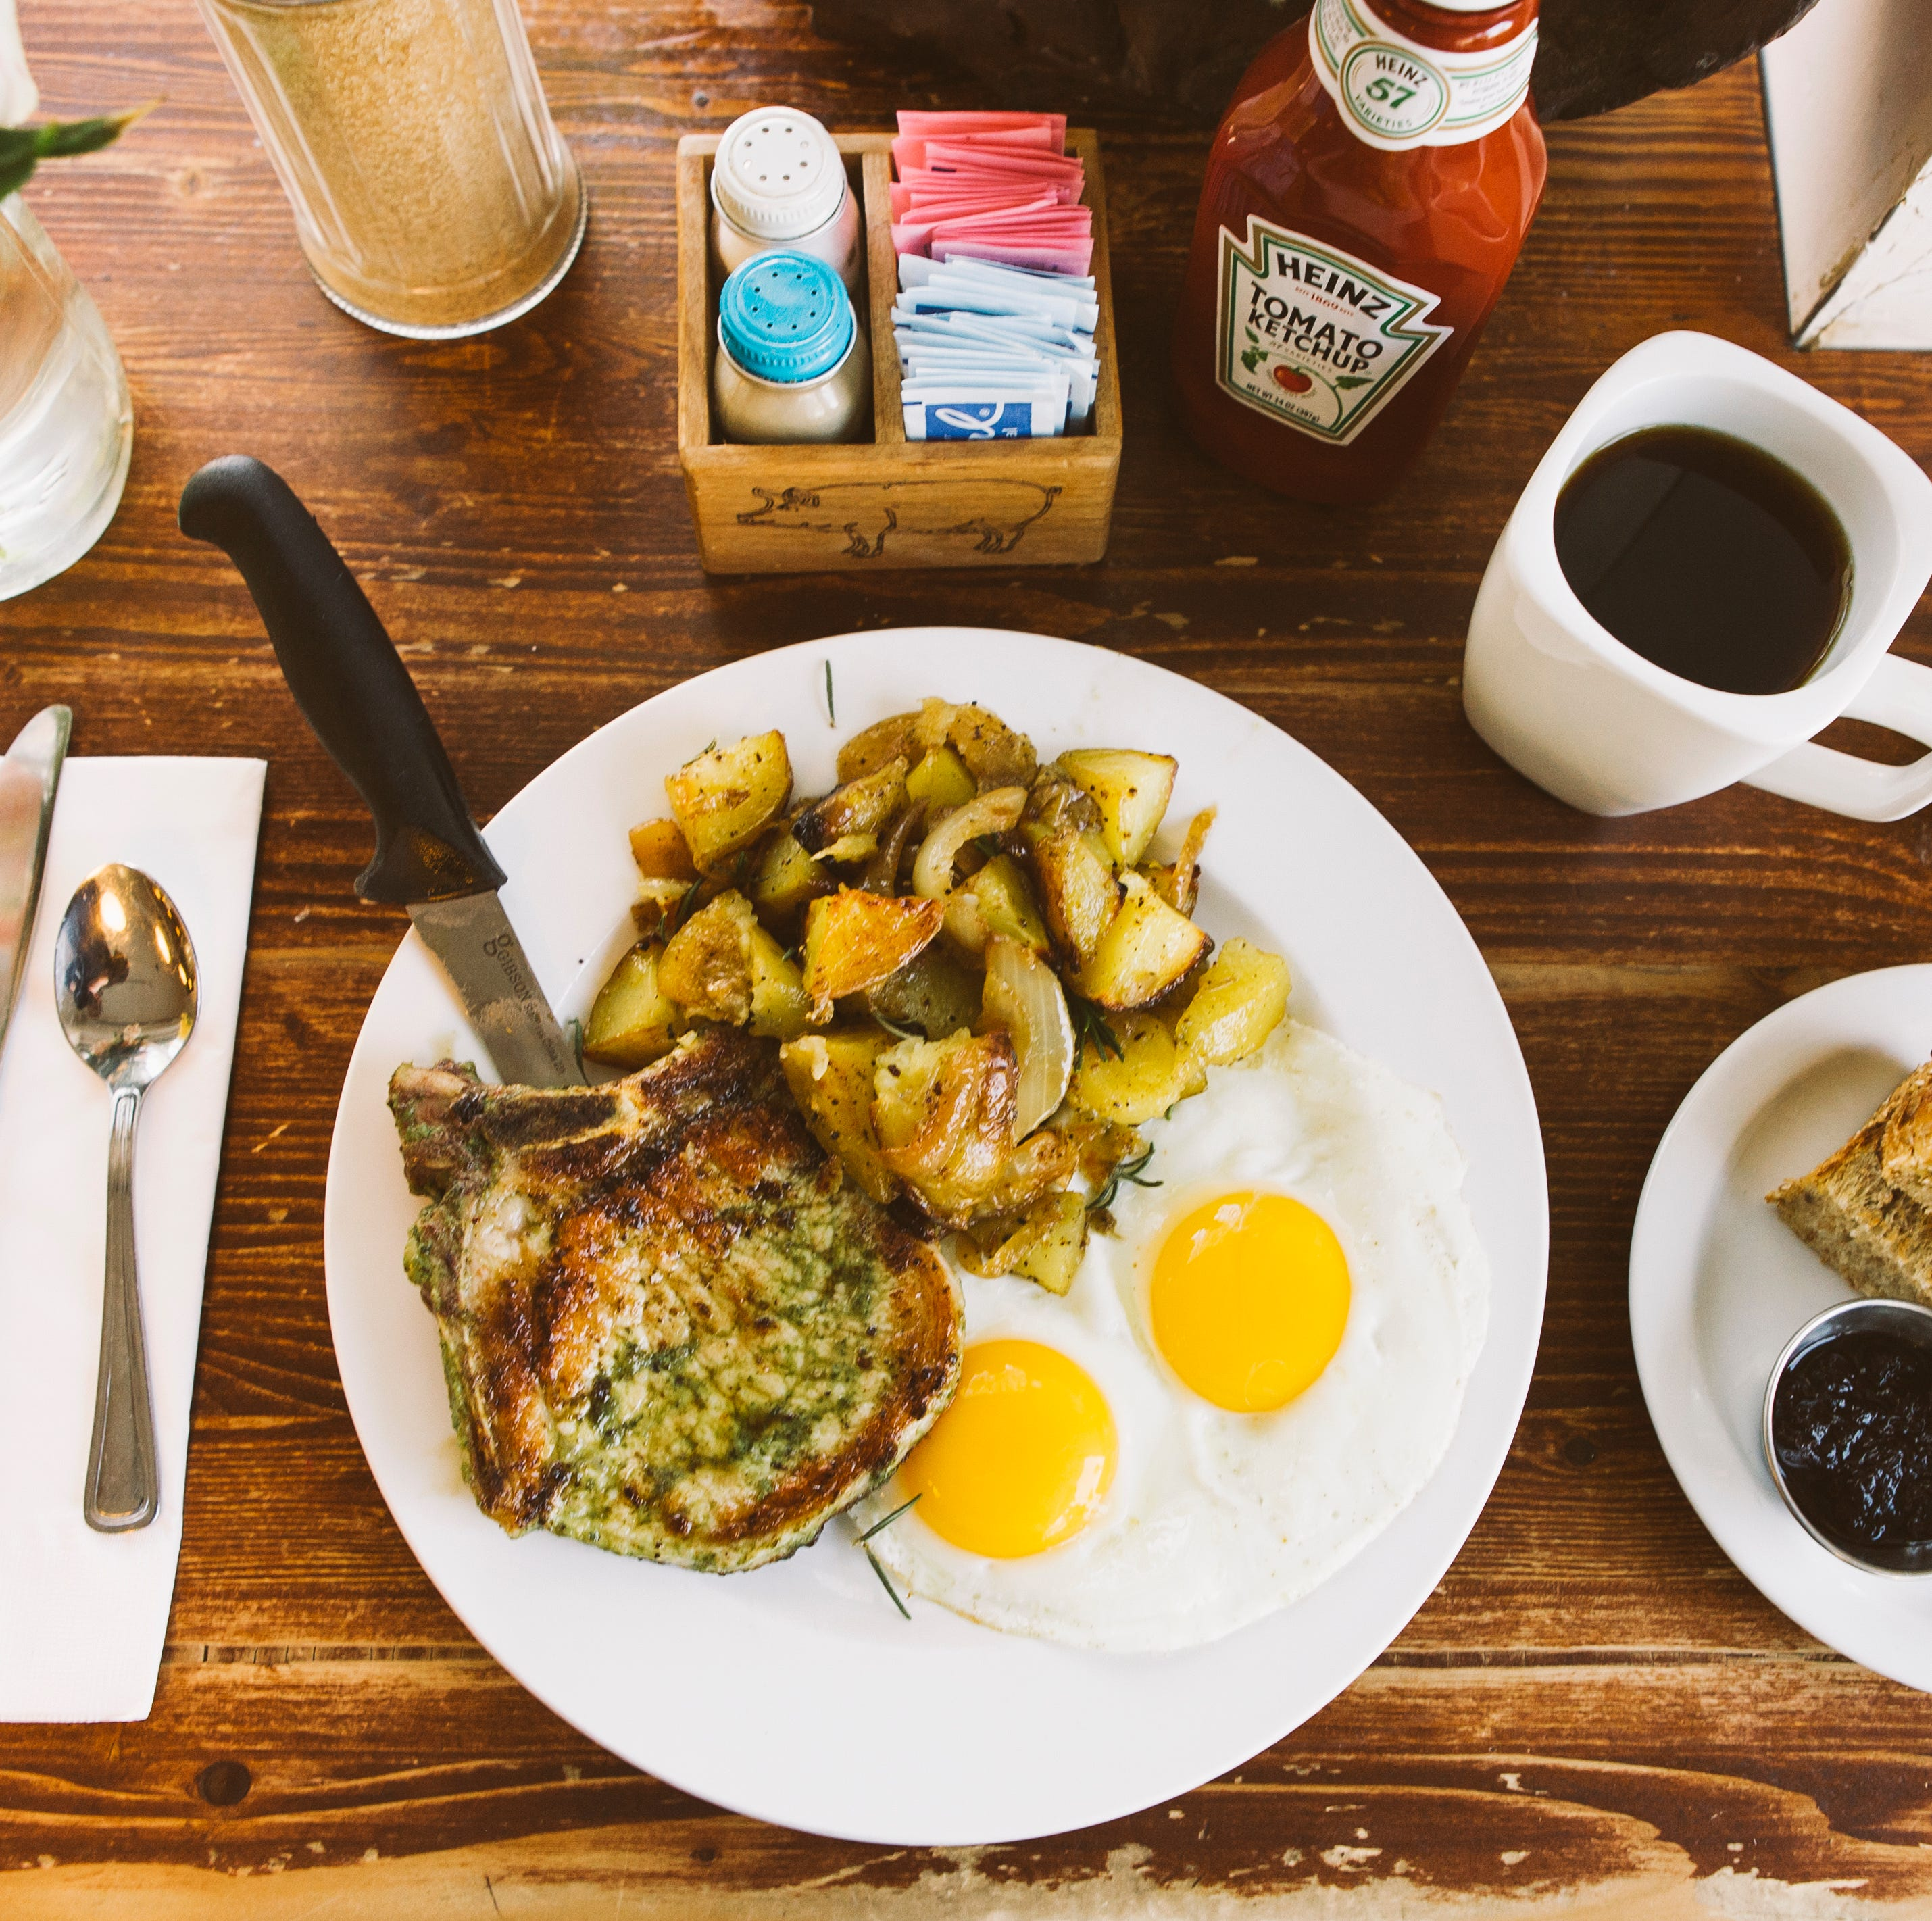 Matt's Big Breakfast will open first franchised location in Scottsdale this fall